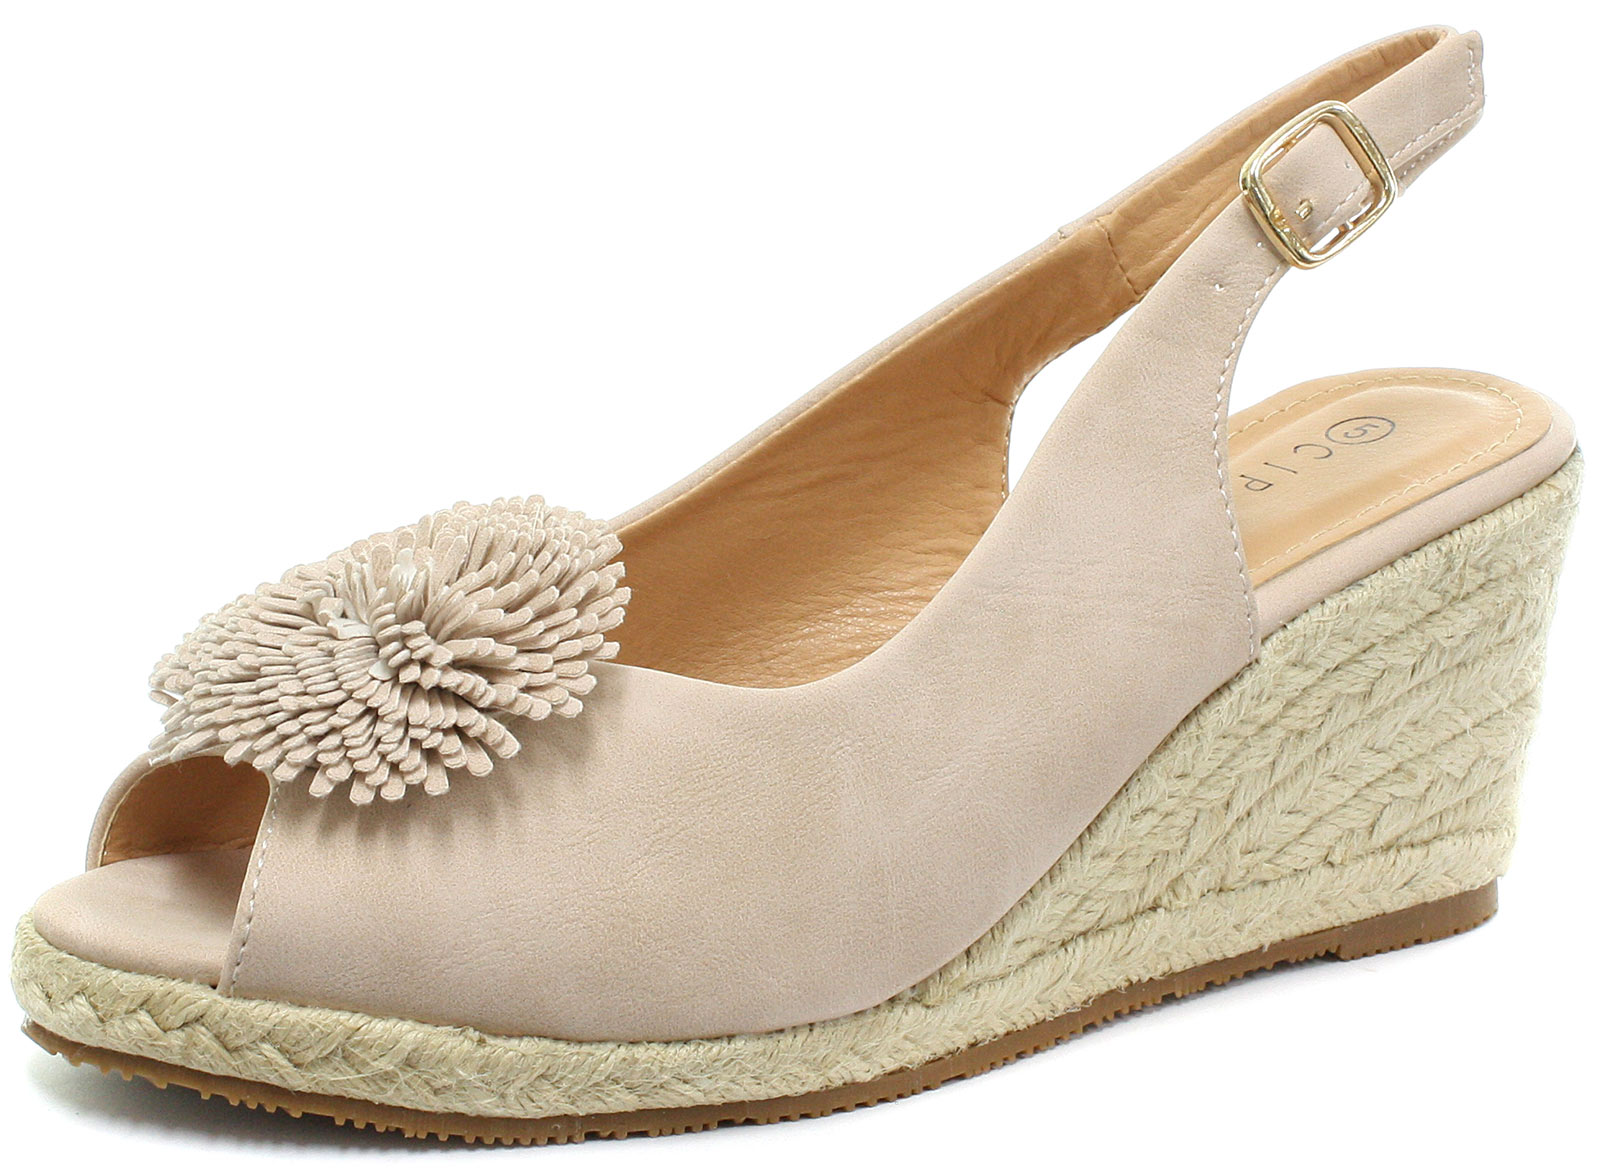 New-Cipriata-Alessandra-Womens-Buckle-Wedge-Heel-Sandals-ALL-SIZES